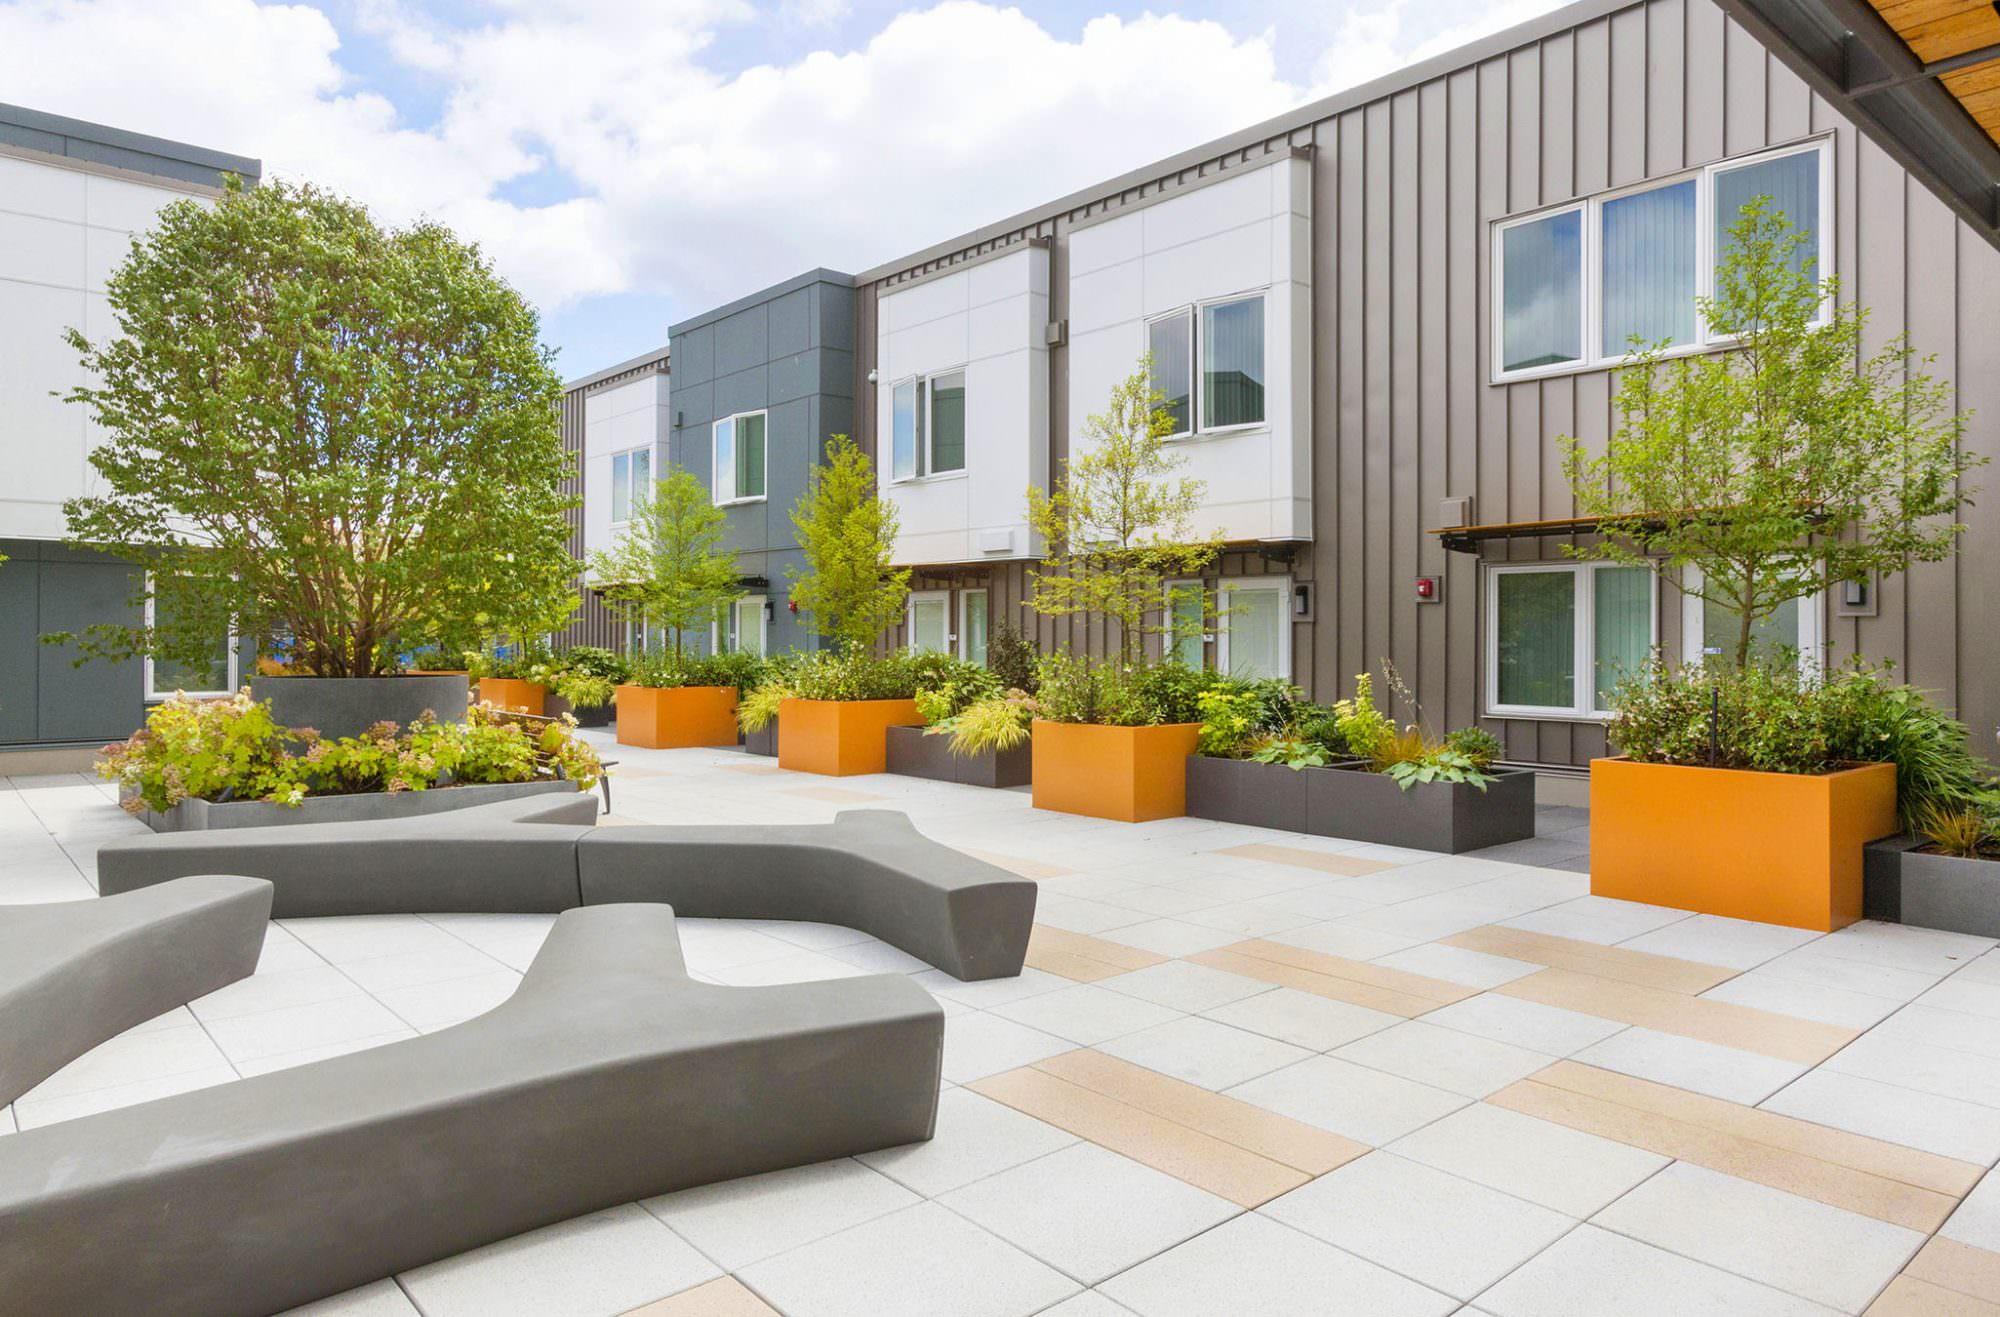 Raven Terrace at Yesler Terrace Landscape Architecture